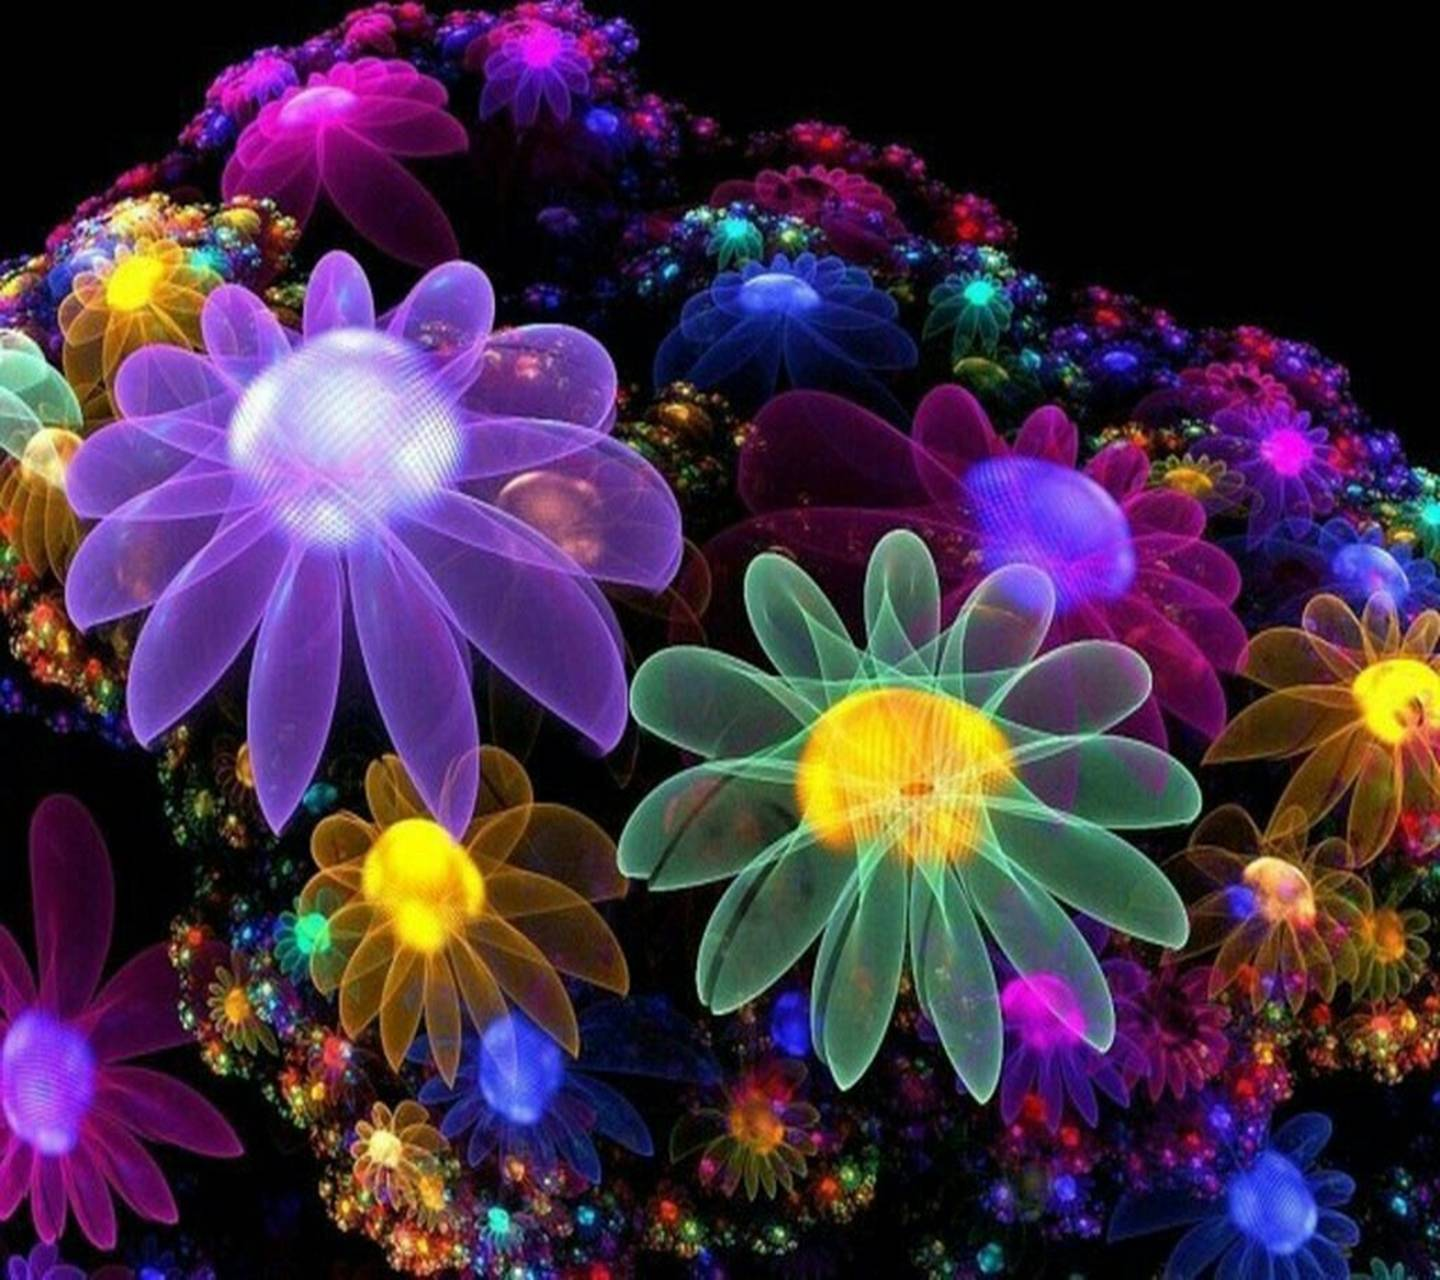 Neon Flower Wallpaper By CostasFe